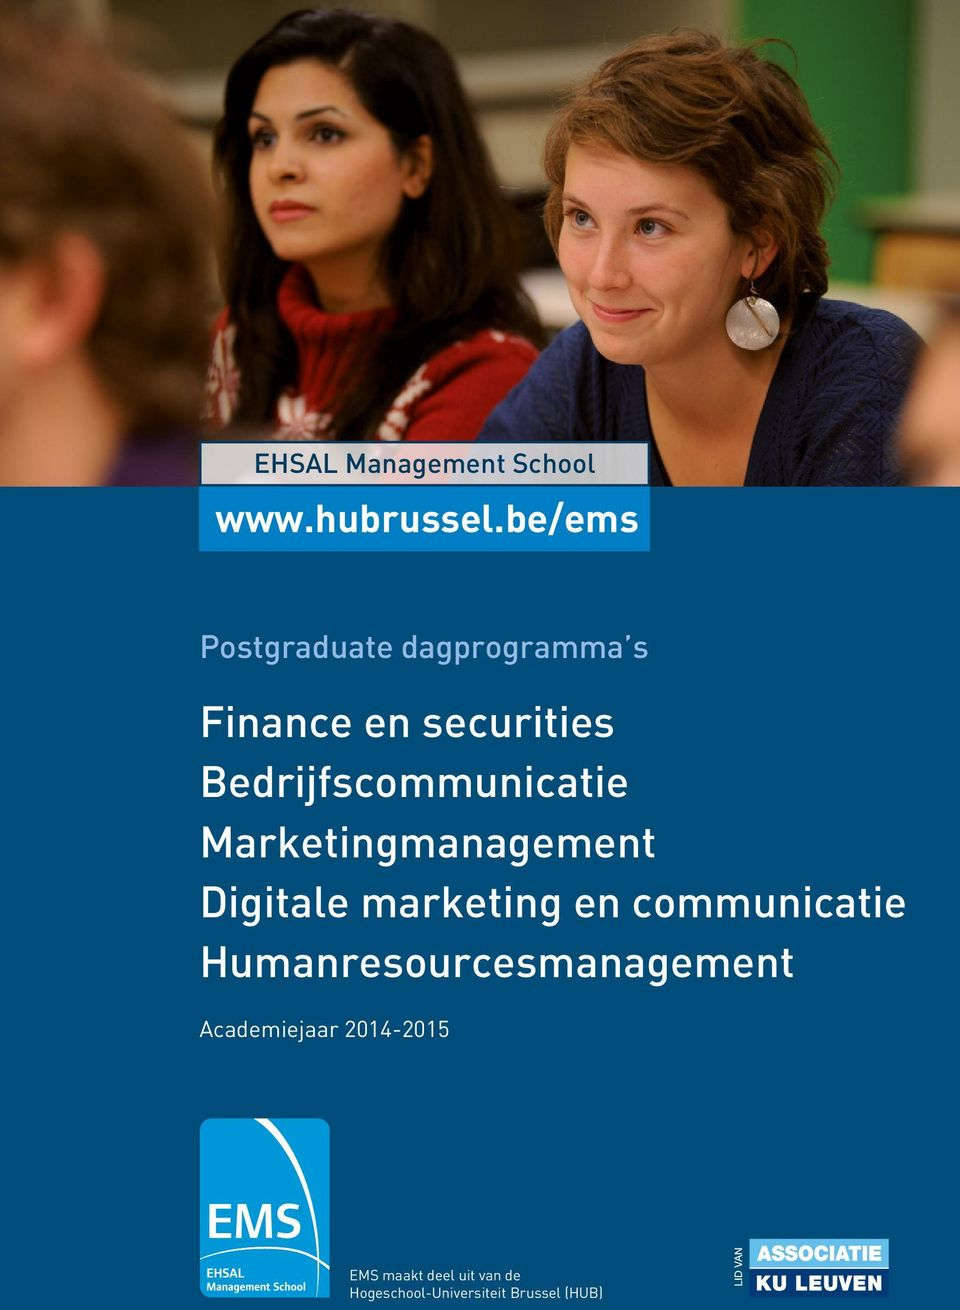 Bedrijfscommunicatie Marketingmanagement Digitale marketing en